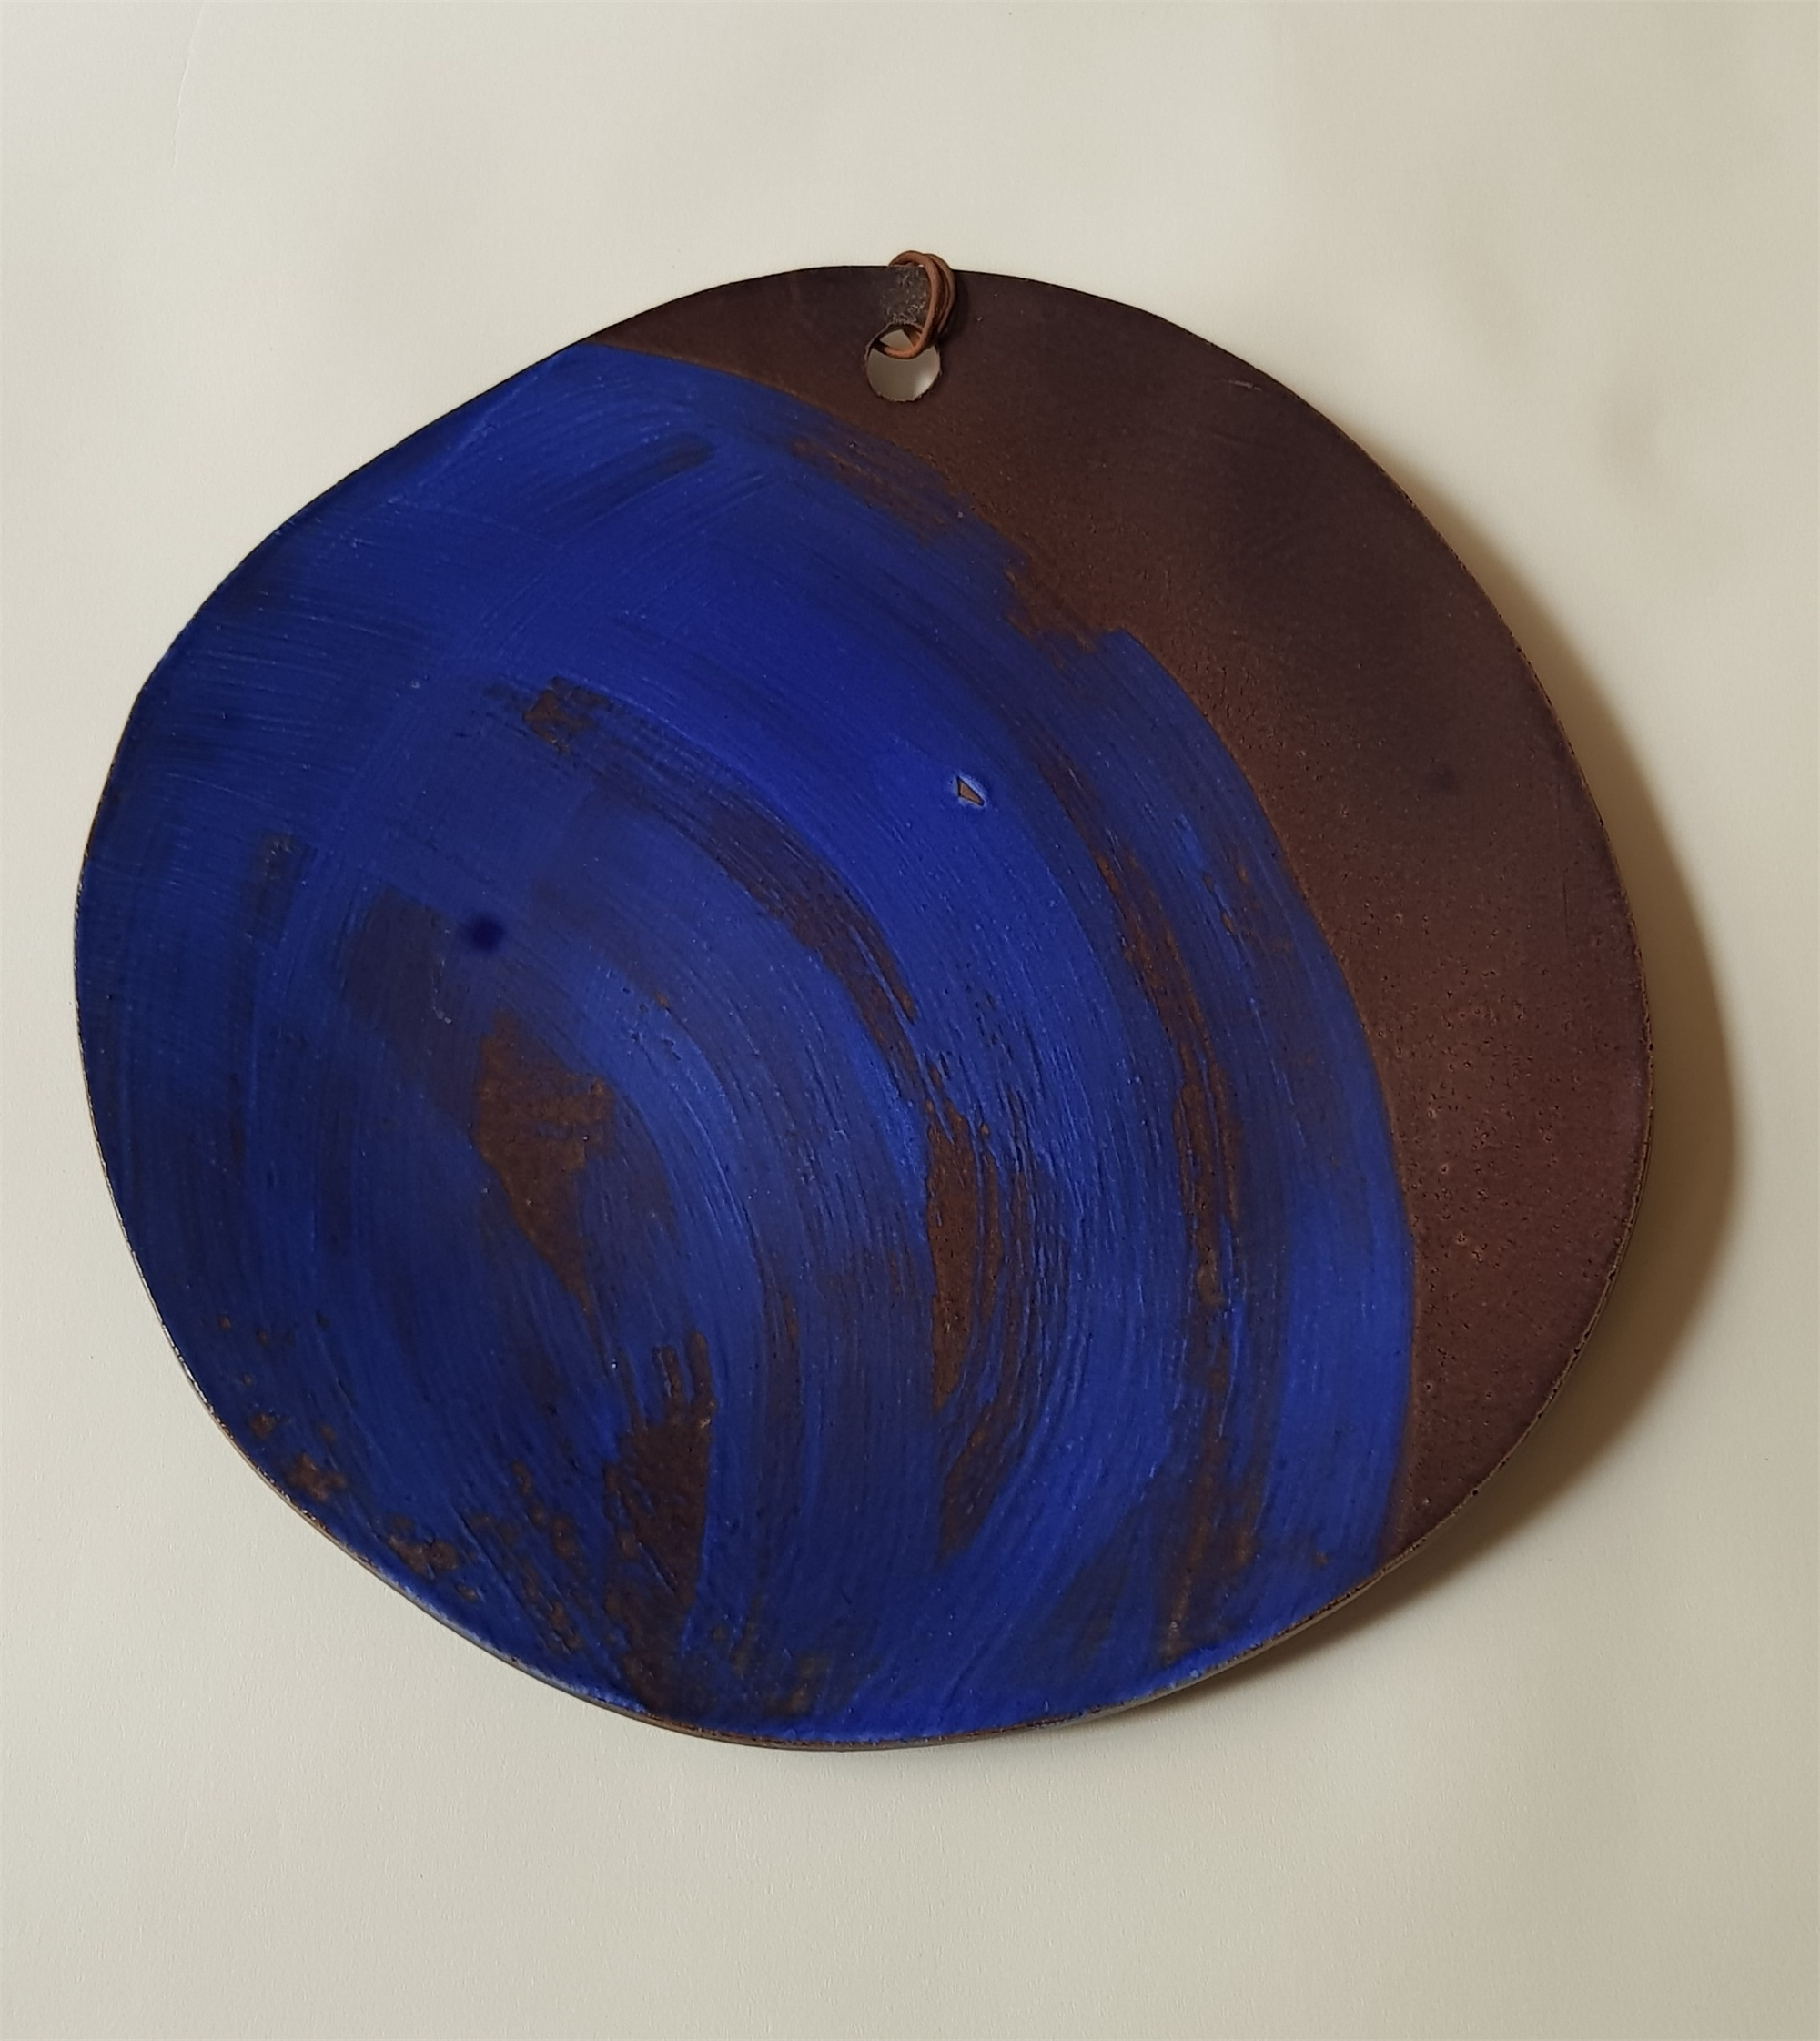 """""""Moon phase #1"""" by Claire de Lavallee"""